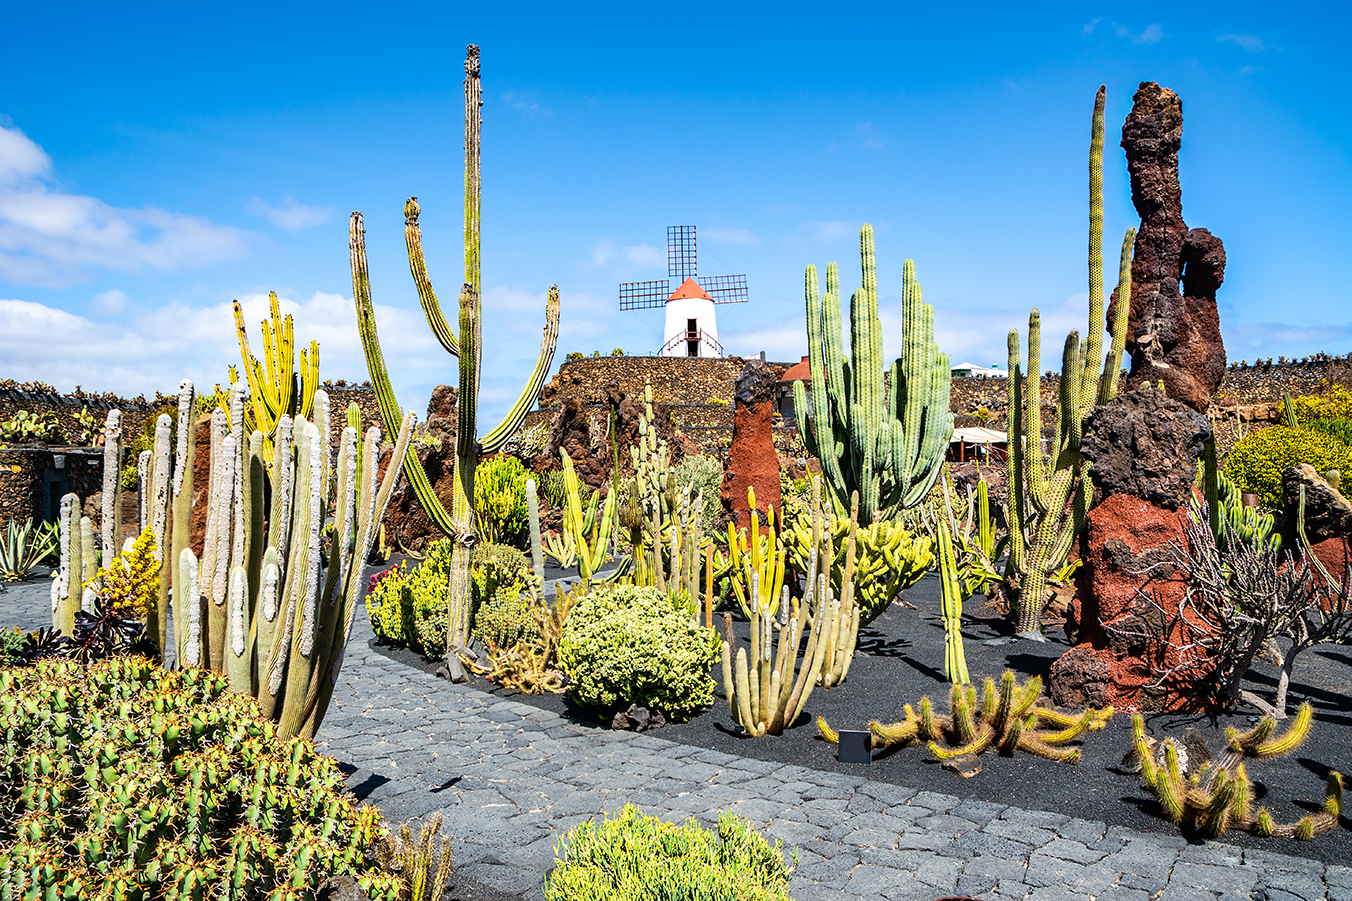 Discovering Guatiza in the northwestern corner of Lanzarote